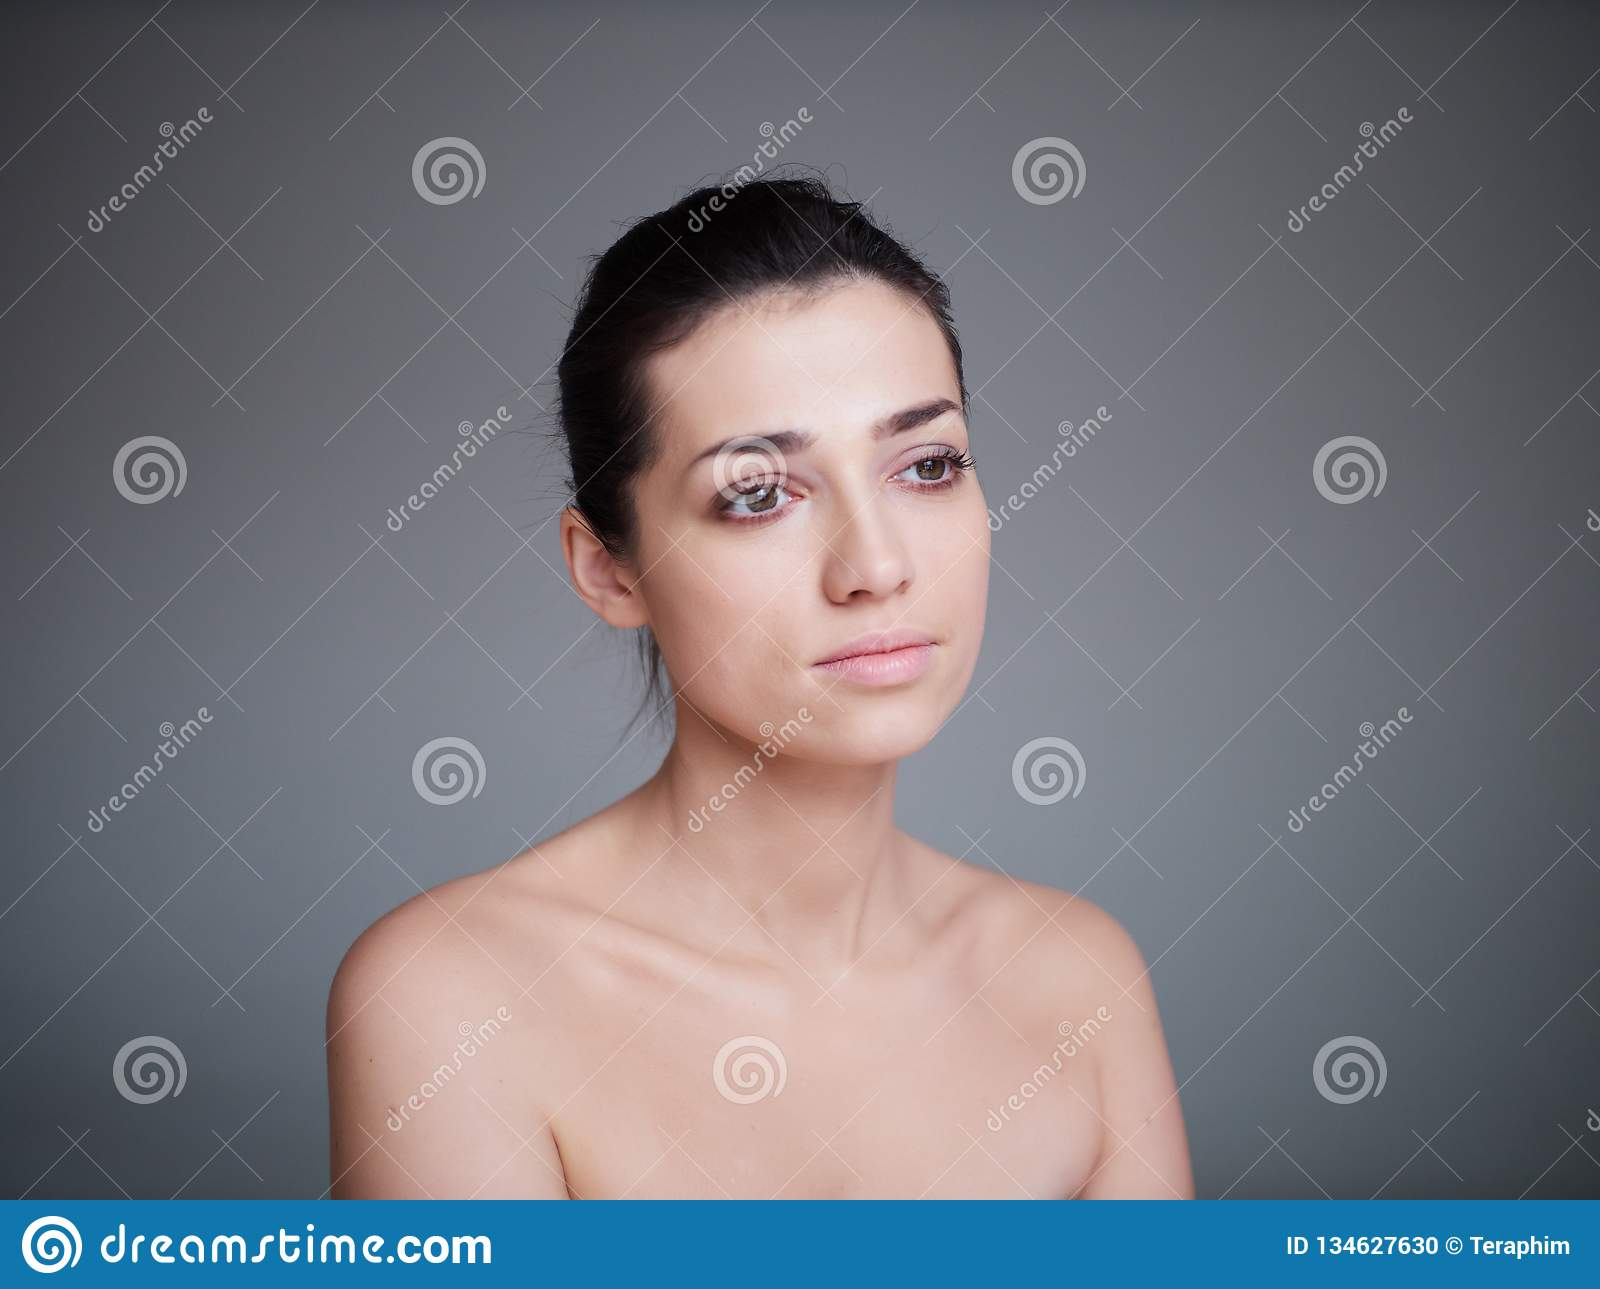 Beauty portrait of healthy female face with natural skin on grey background. Cosmetology concept